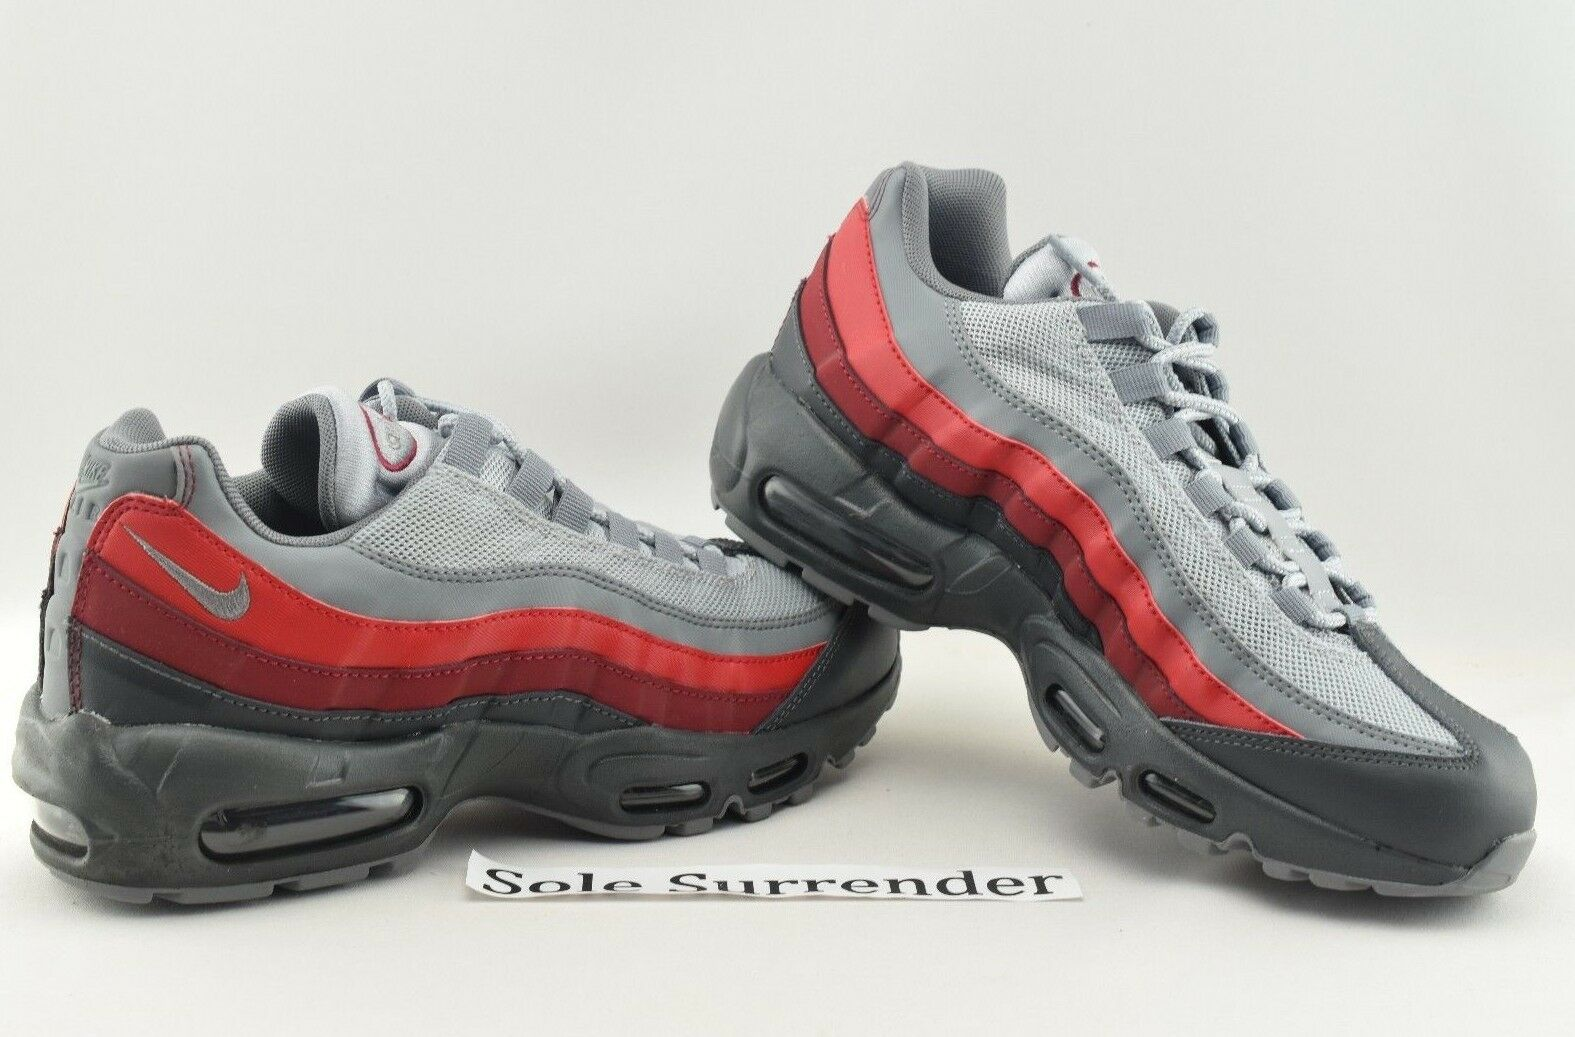 new styles 7b8a4 d71f3 Nike Air Max 95 Essential - CHOOSE SIZE - 749766-025 749766-025 749766